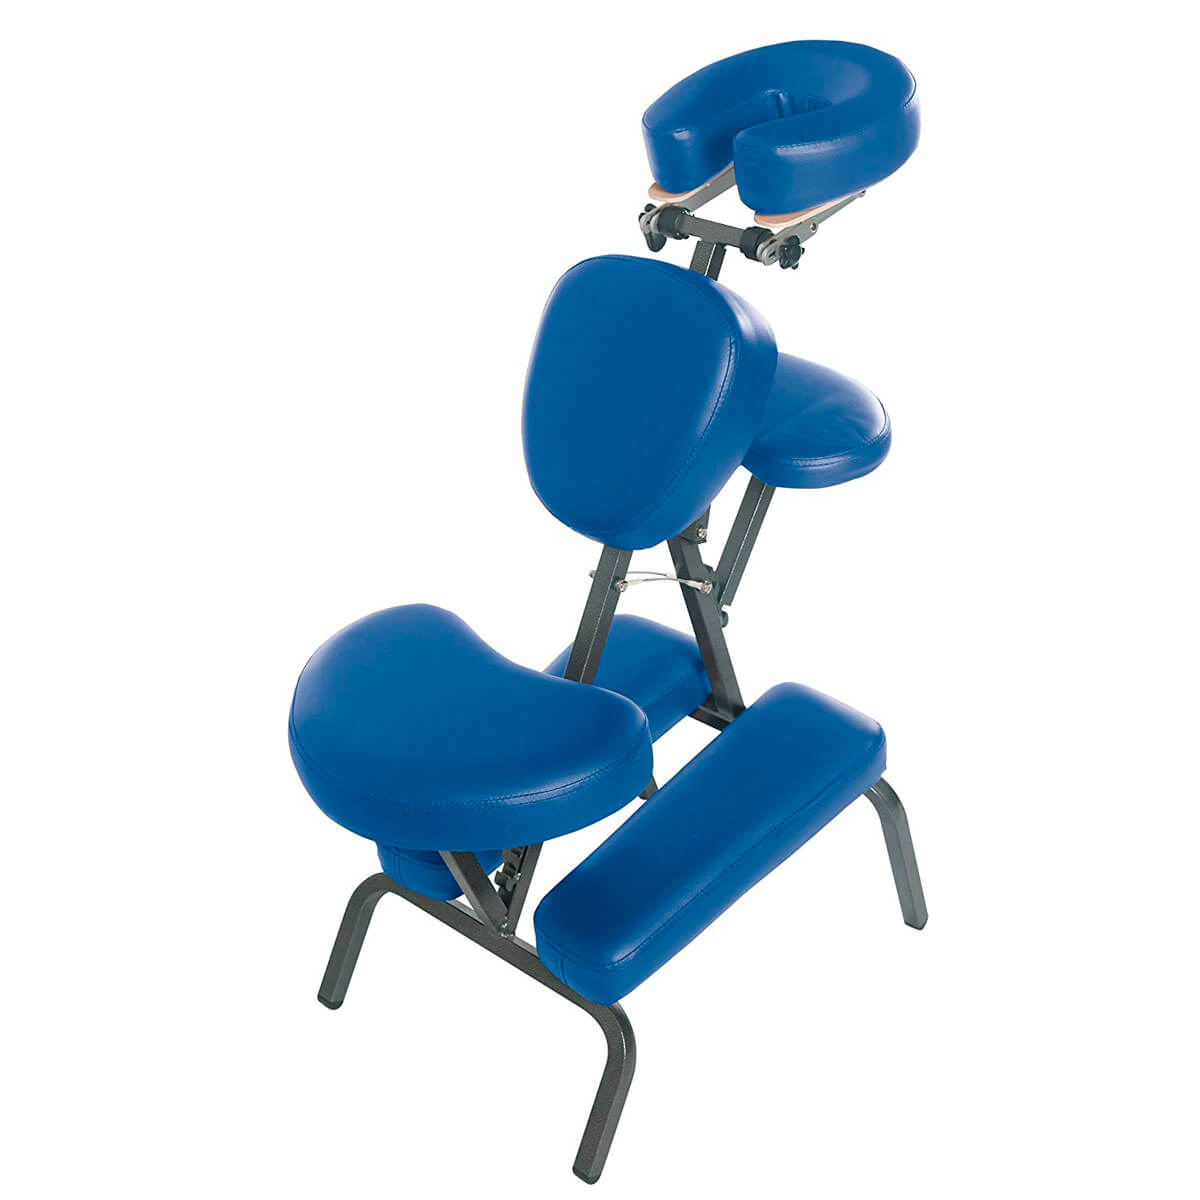 3B Scientific PVC Vinyl Pro Massage Chair blue